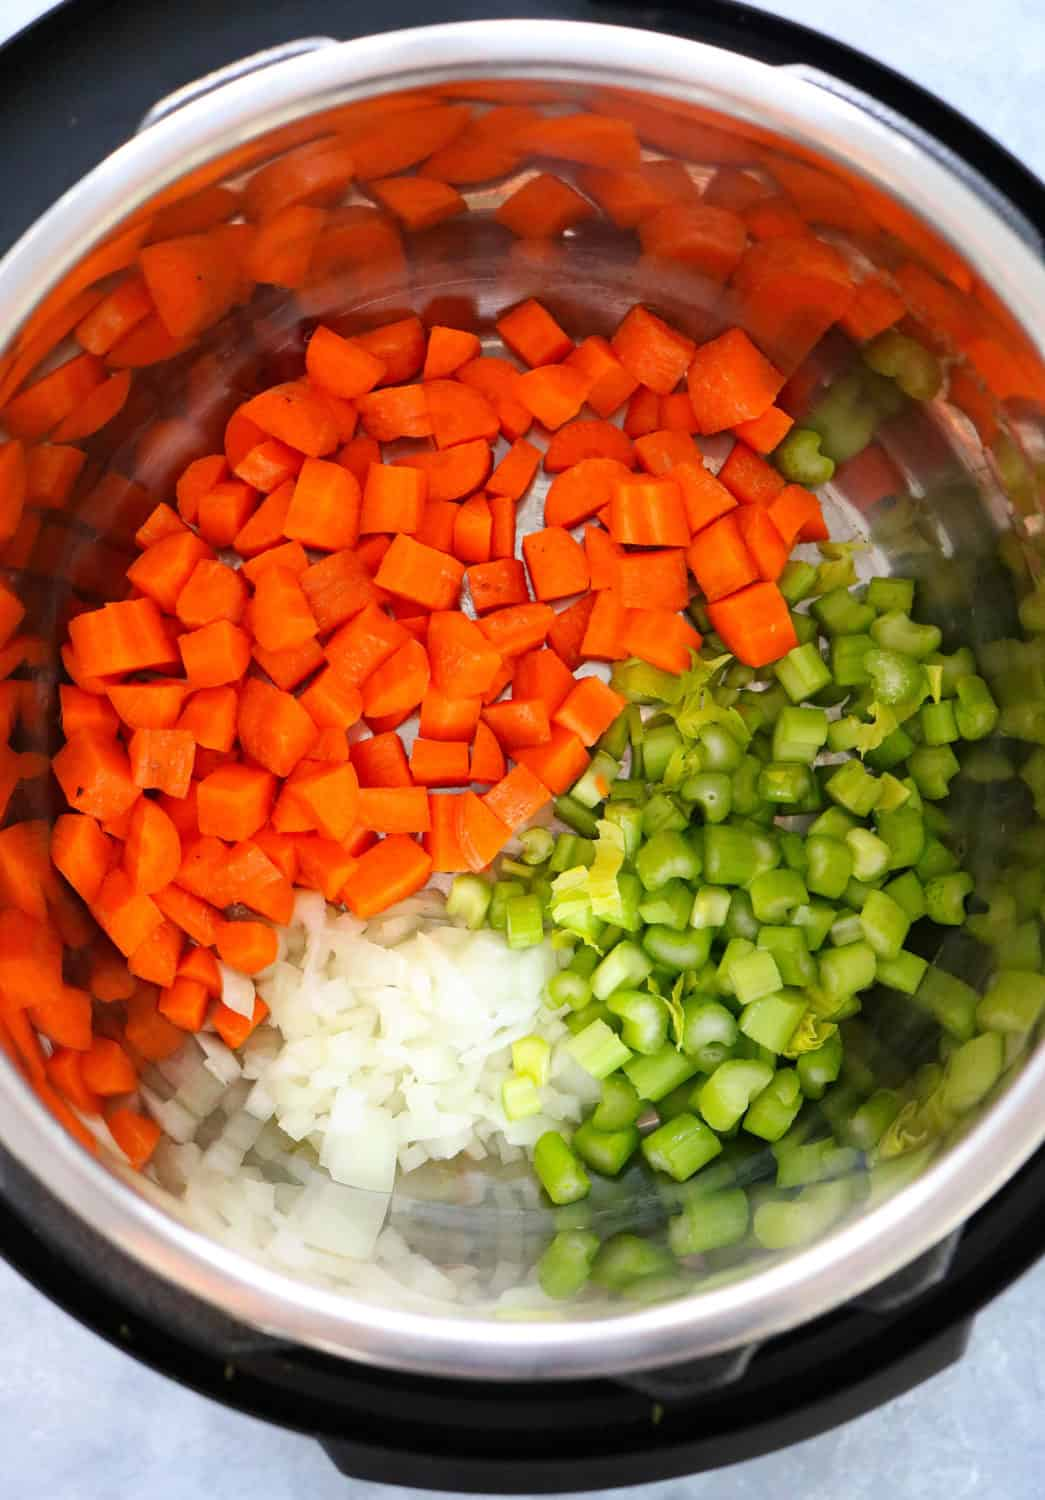 diced carrots, celery, and onion in an instant pot